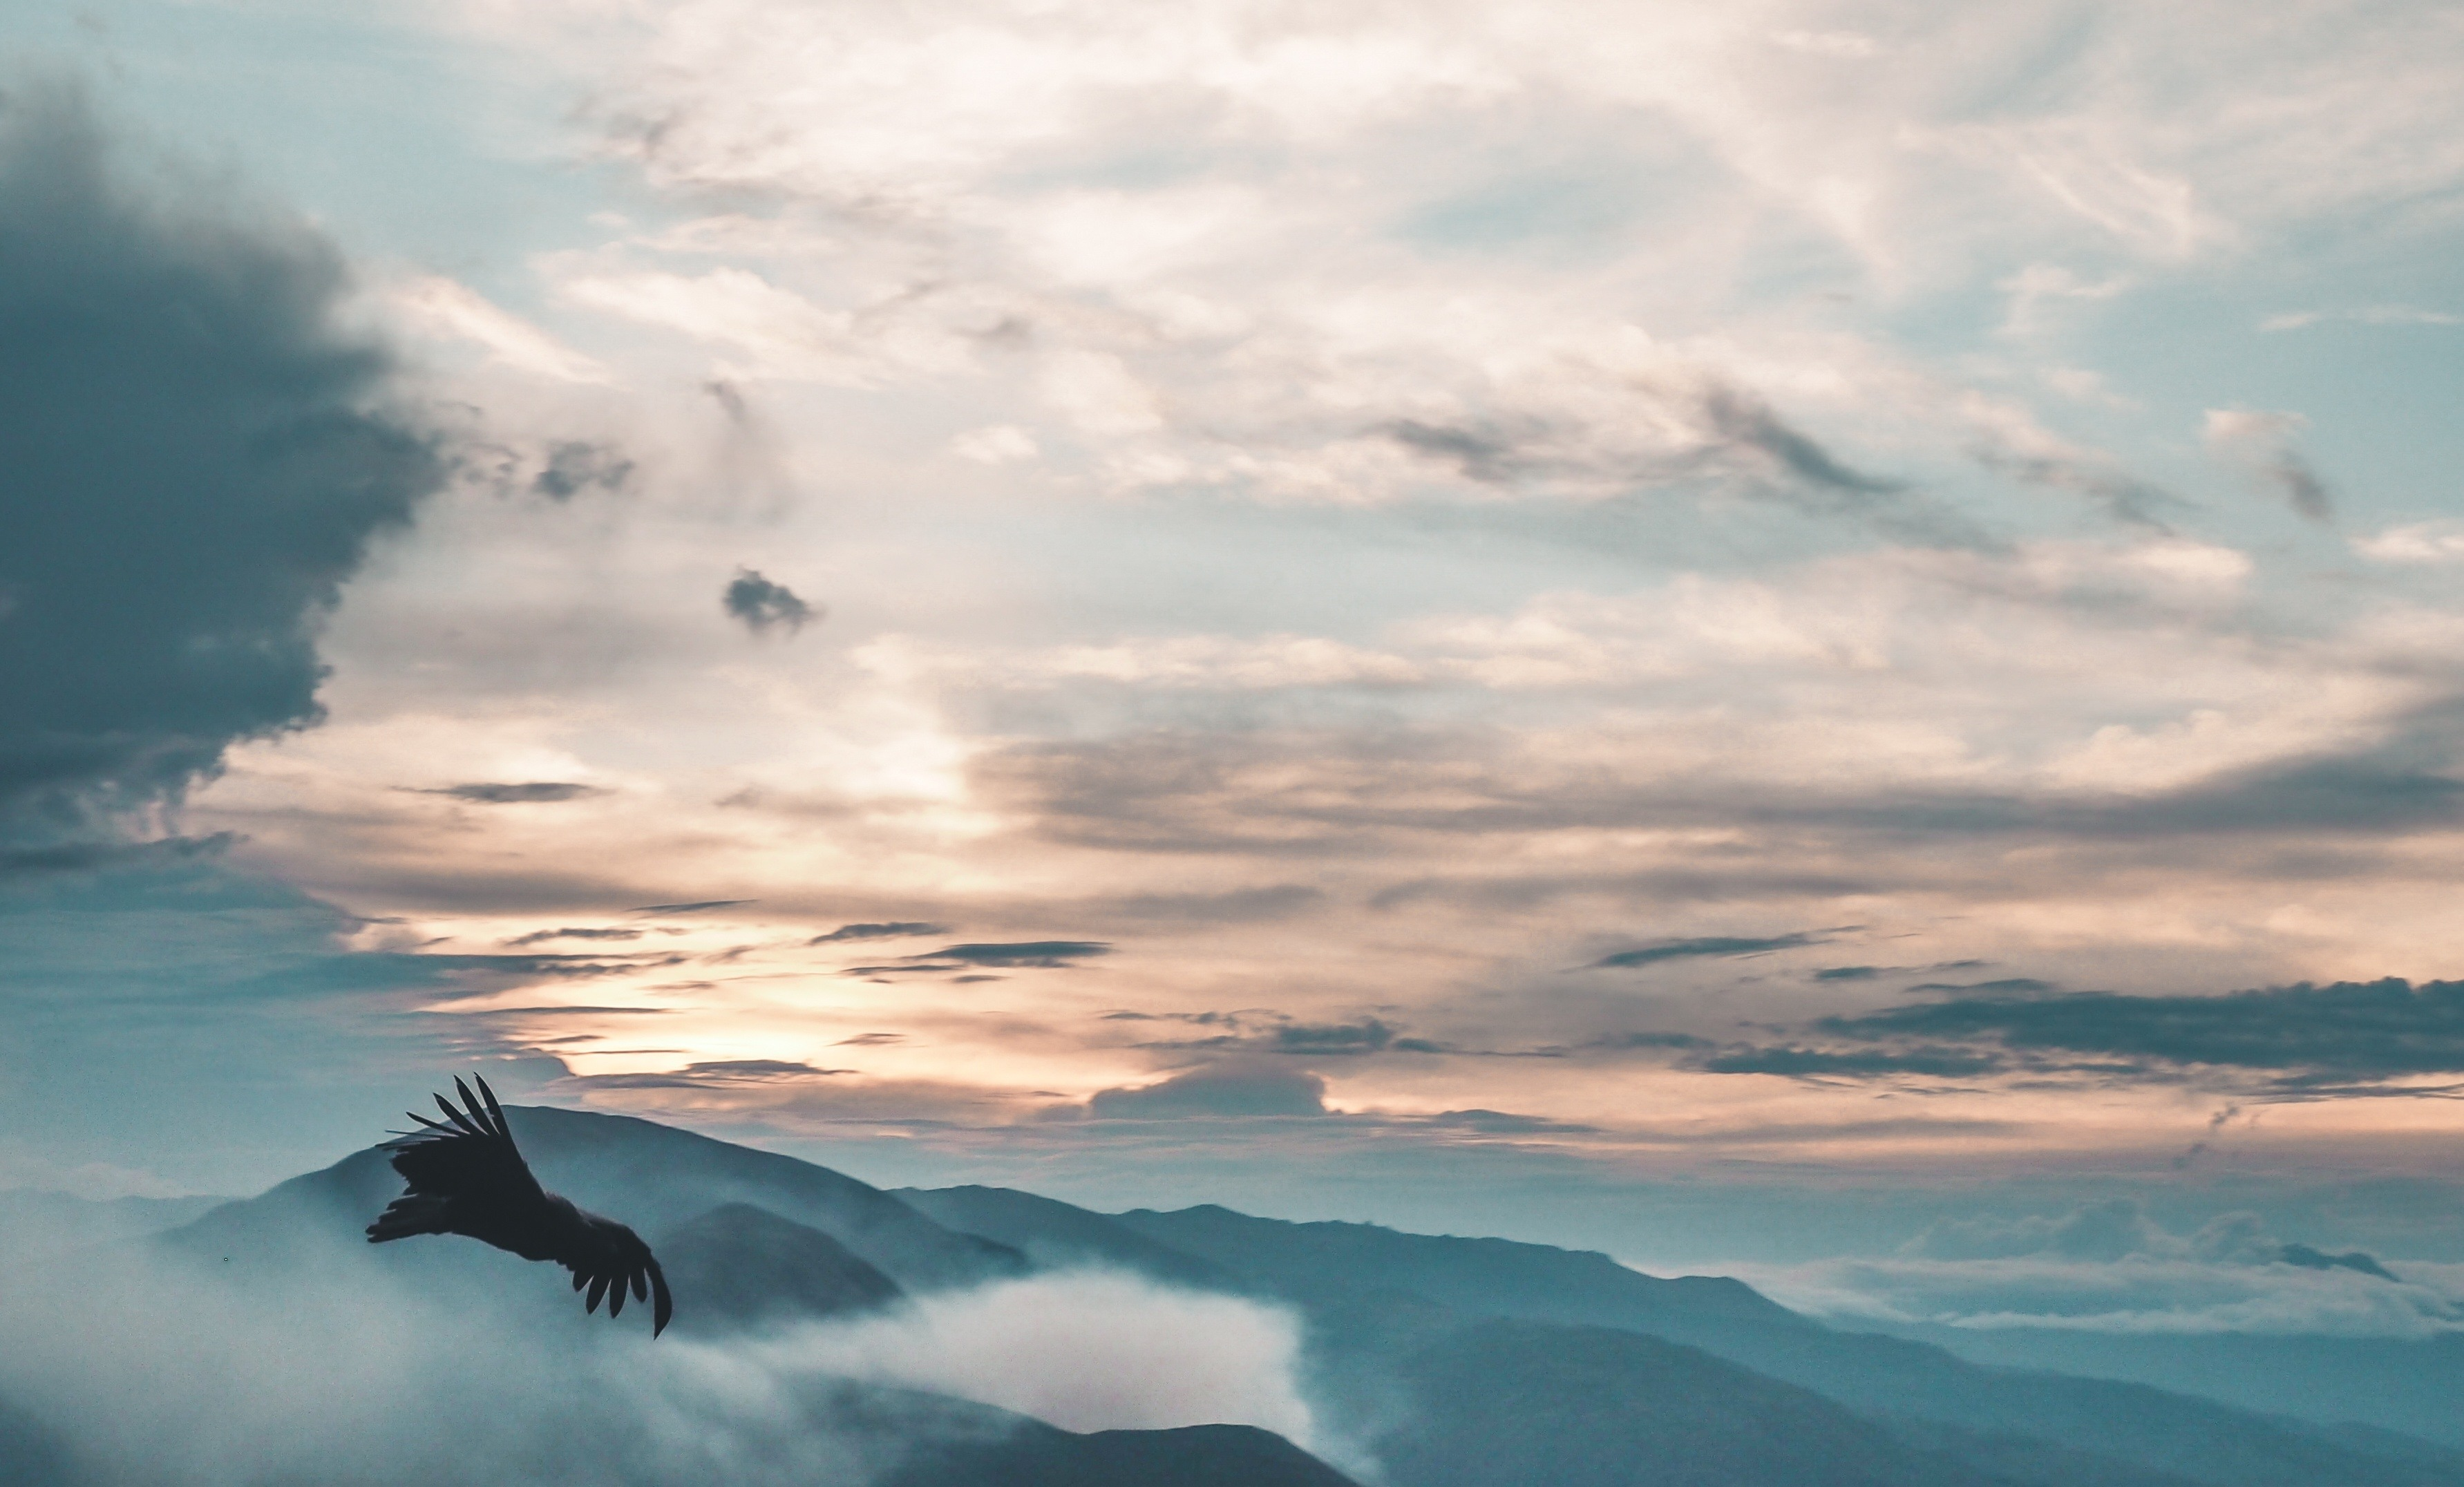 A bird flying in the mountains